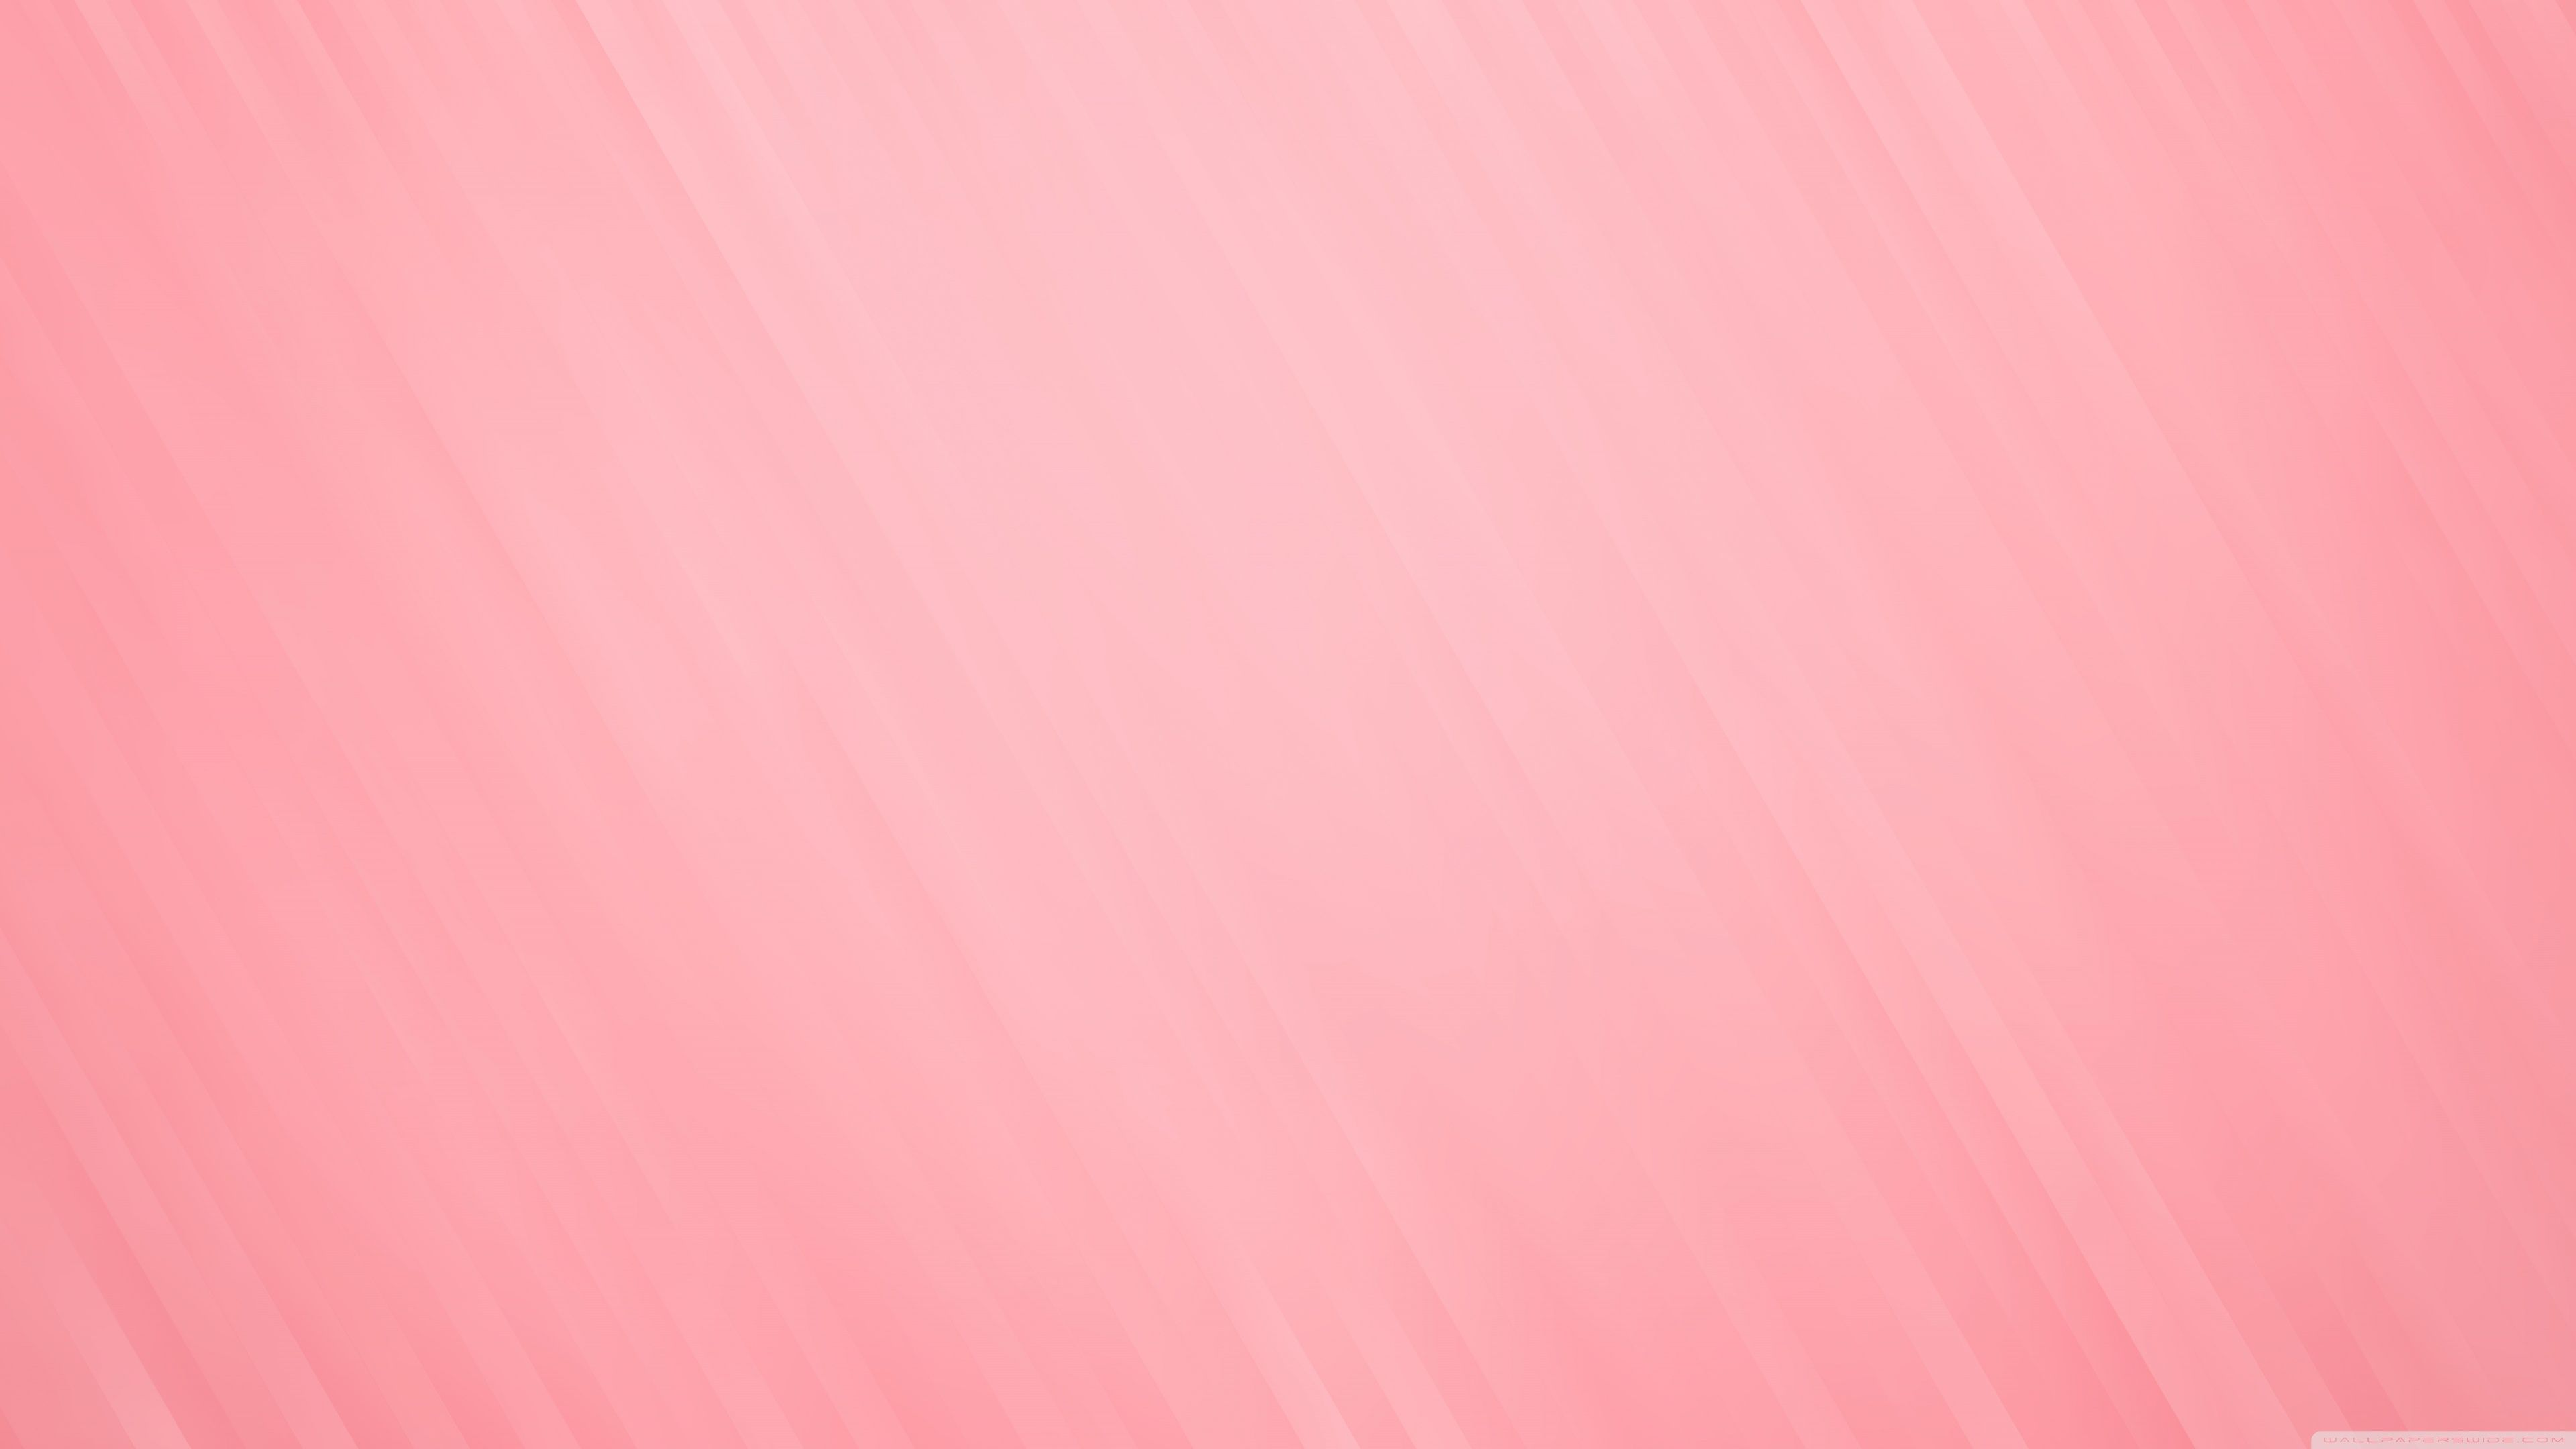 4K Pink Wallpapers   Top 4K Pink Backgrounds   WallpaperAccess 3840x2160